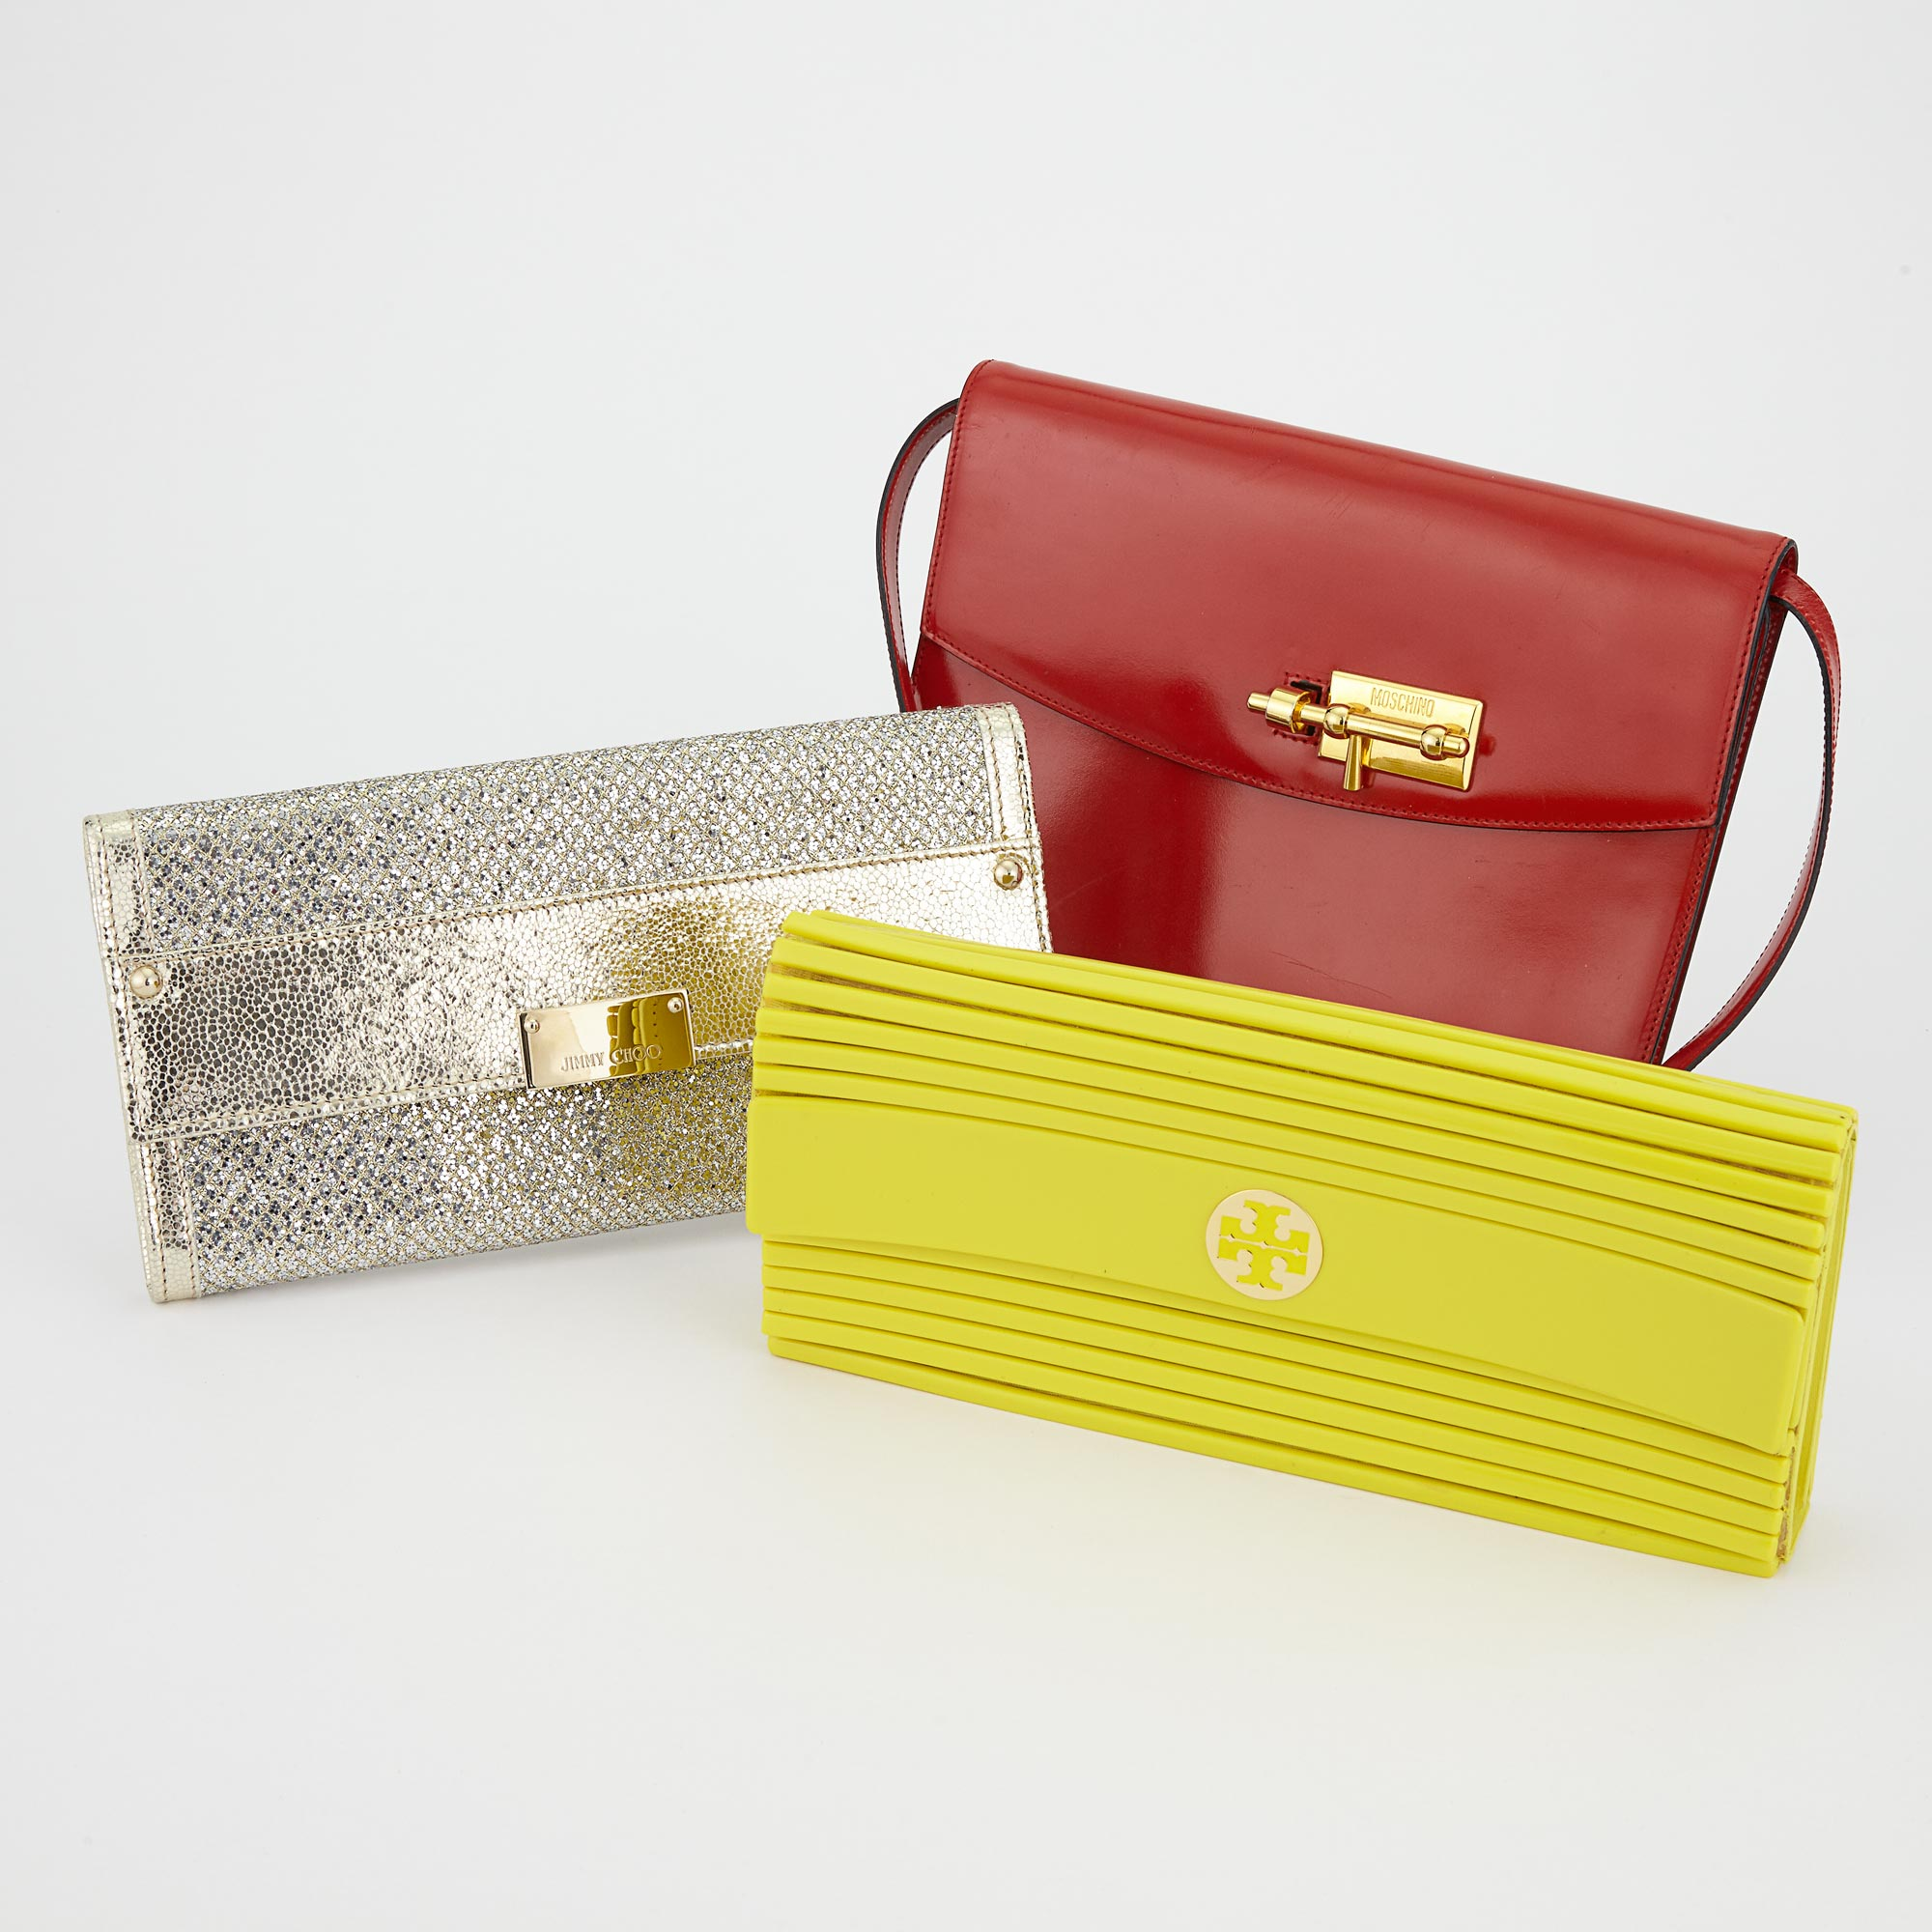 Lot image - Metallic Leather Clutch, Jimmy Choo, Red Leather Shoulder Bag, Moschino, and Yellow Acrylic Clutch, Tory Burch